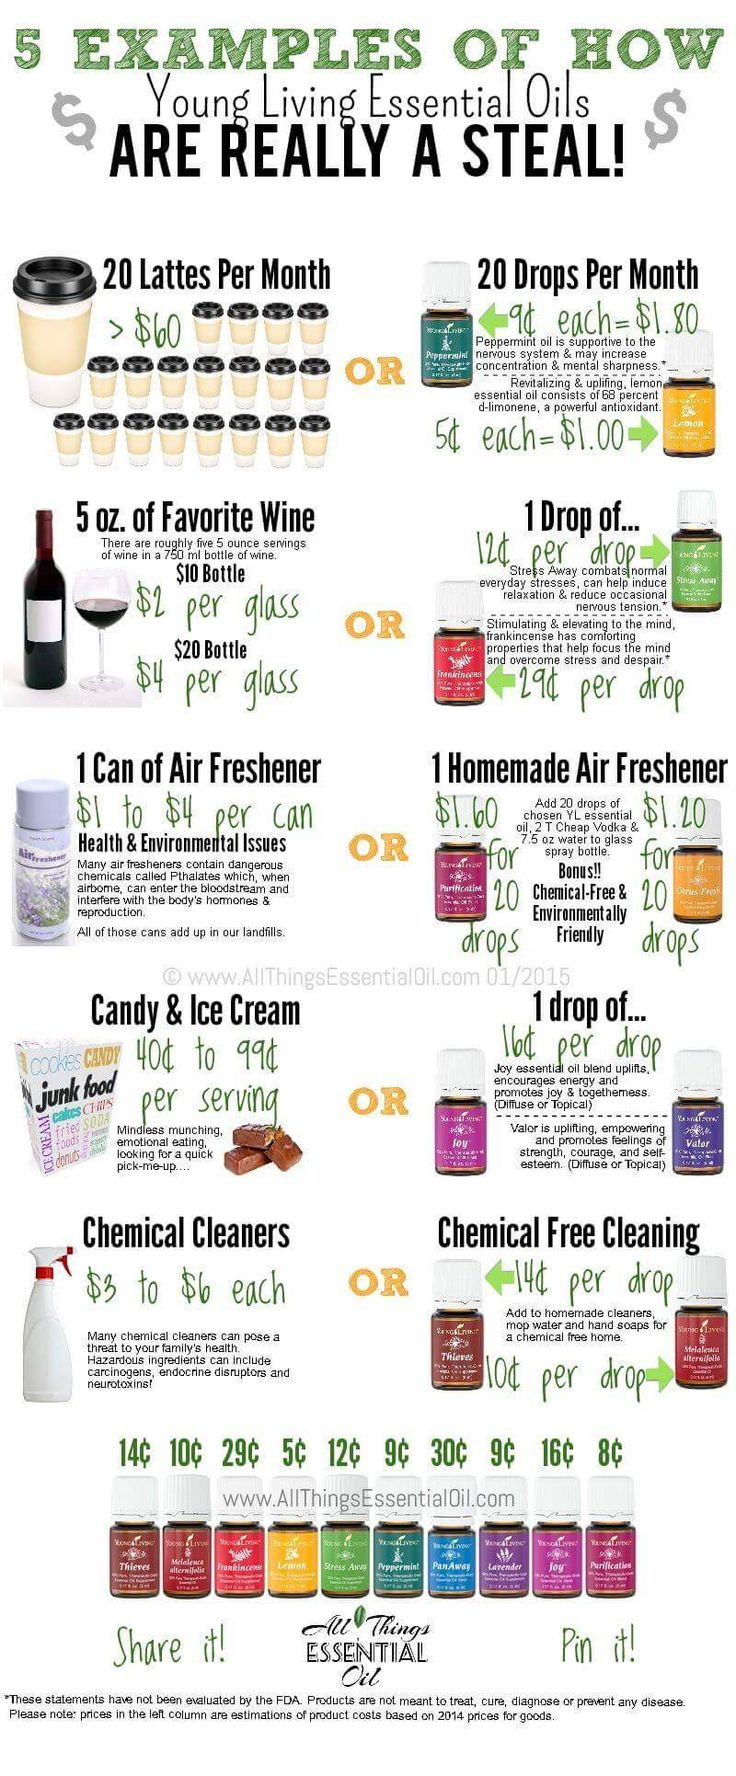 5 Examples of how Young Living Essential Oils are Really a Steal - in Price / Cost | Kim Ayres #1529959 | Email: klayres5@yahoo.com | Visit http://beta.youngliving.com to order!